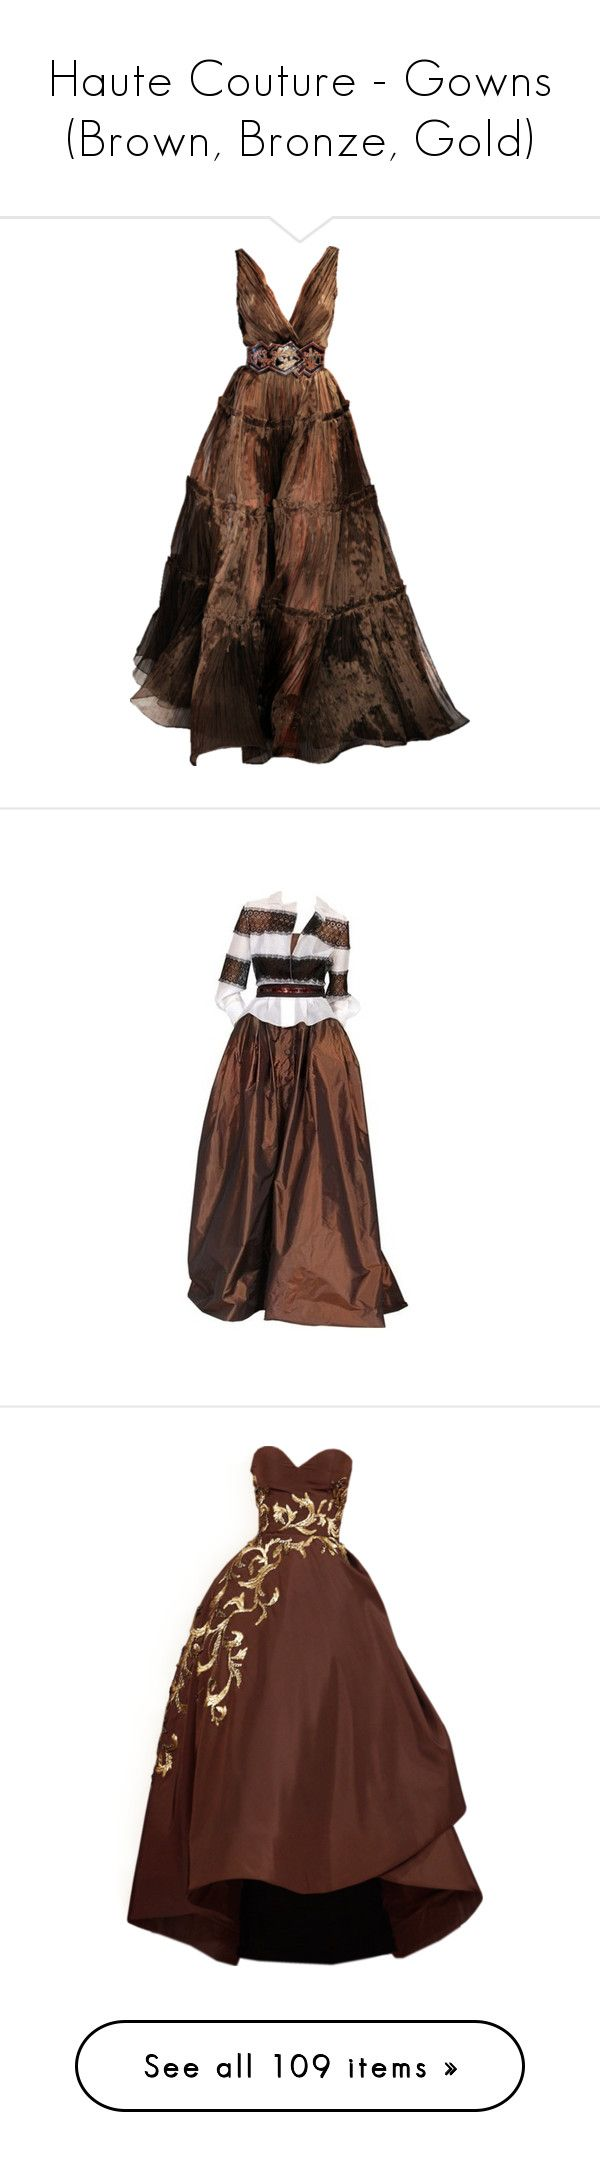 """Haute Couture - Gowns (Brown, Bronze, Gold)"" by giovanna1995 ❤ liked on Polyvore featuring dresses, gowns, long dresses, vestidos, brown gown, brown evening gowns, oscar de la renta evening gowns, brown dresses, brown evening dress and long dress"